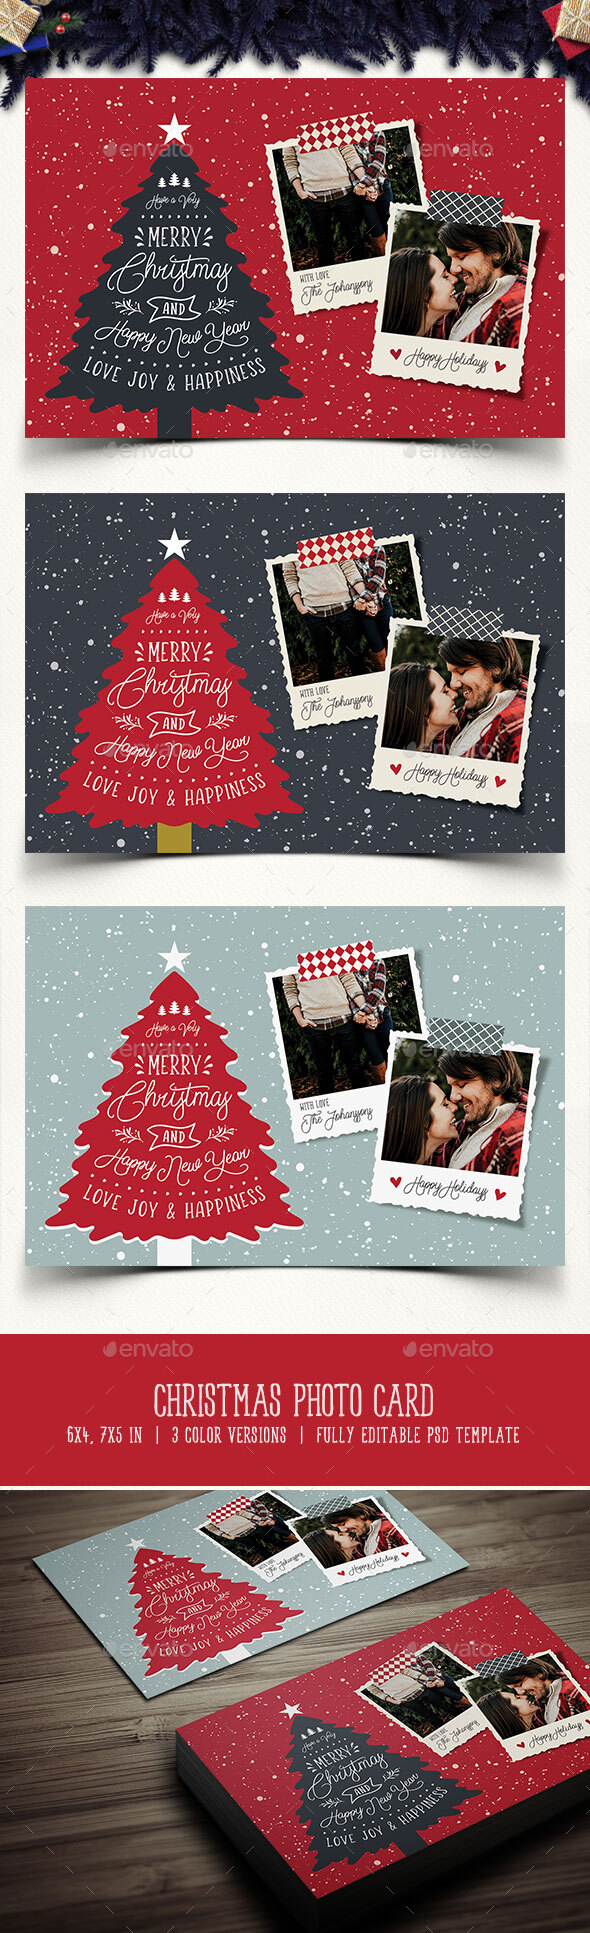 Christmas Card Designs Templates From Graphicriver